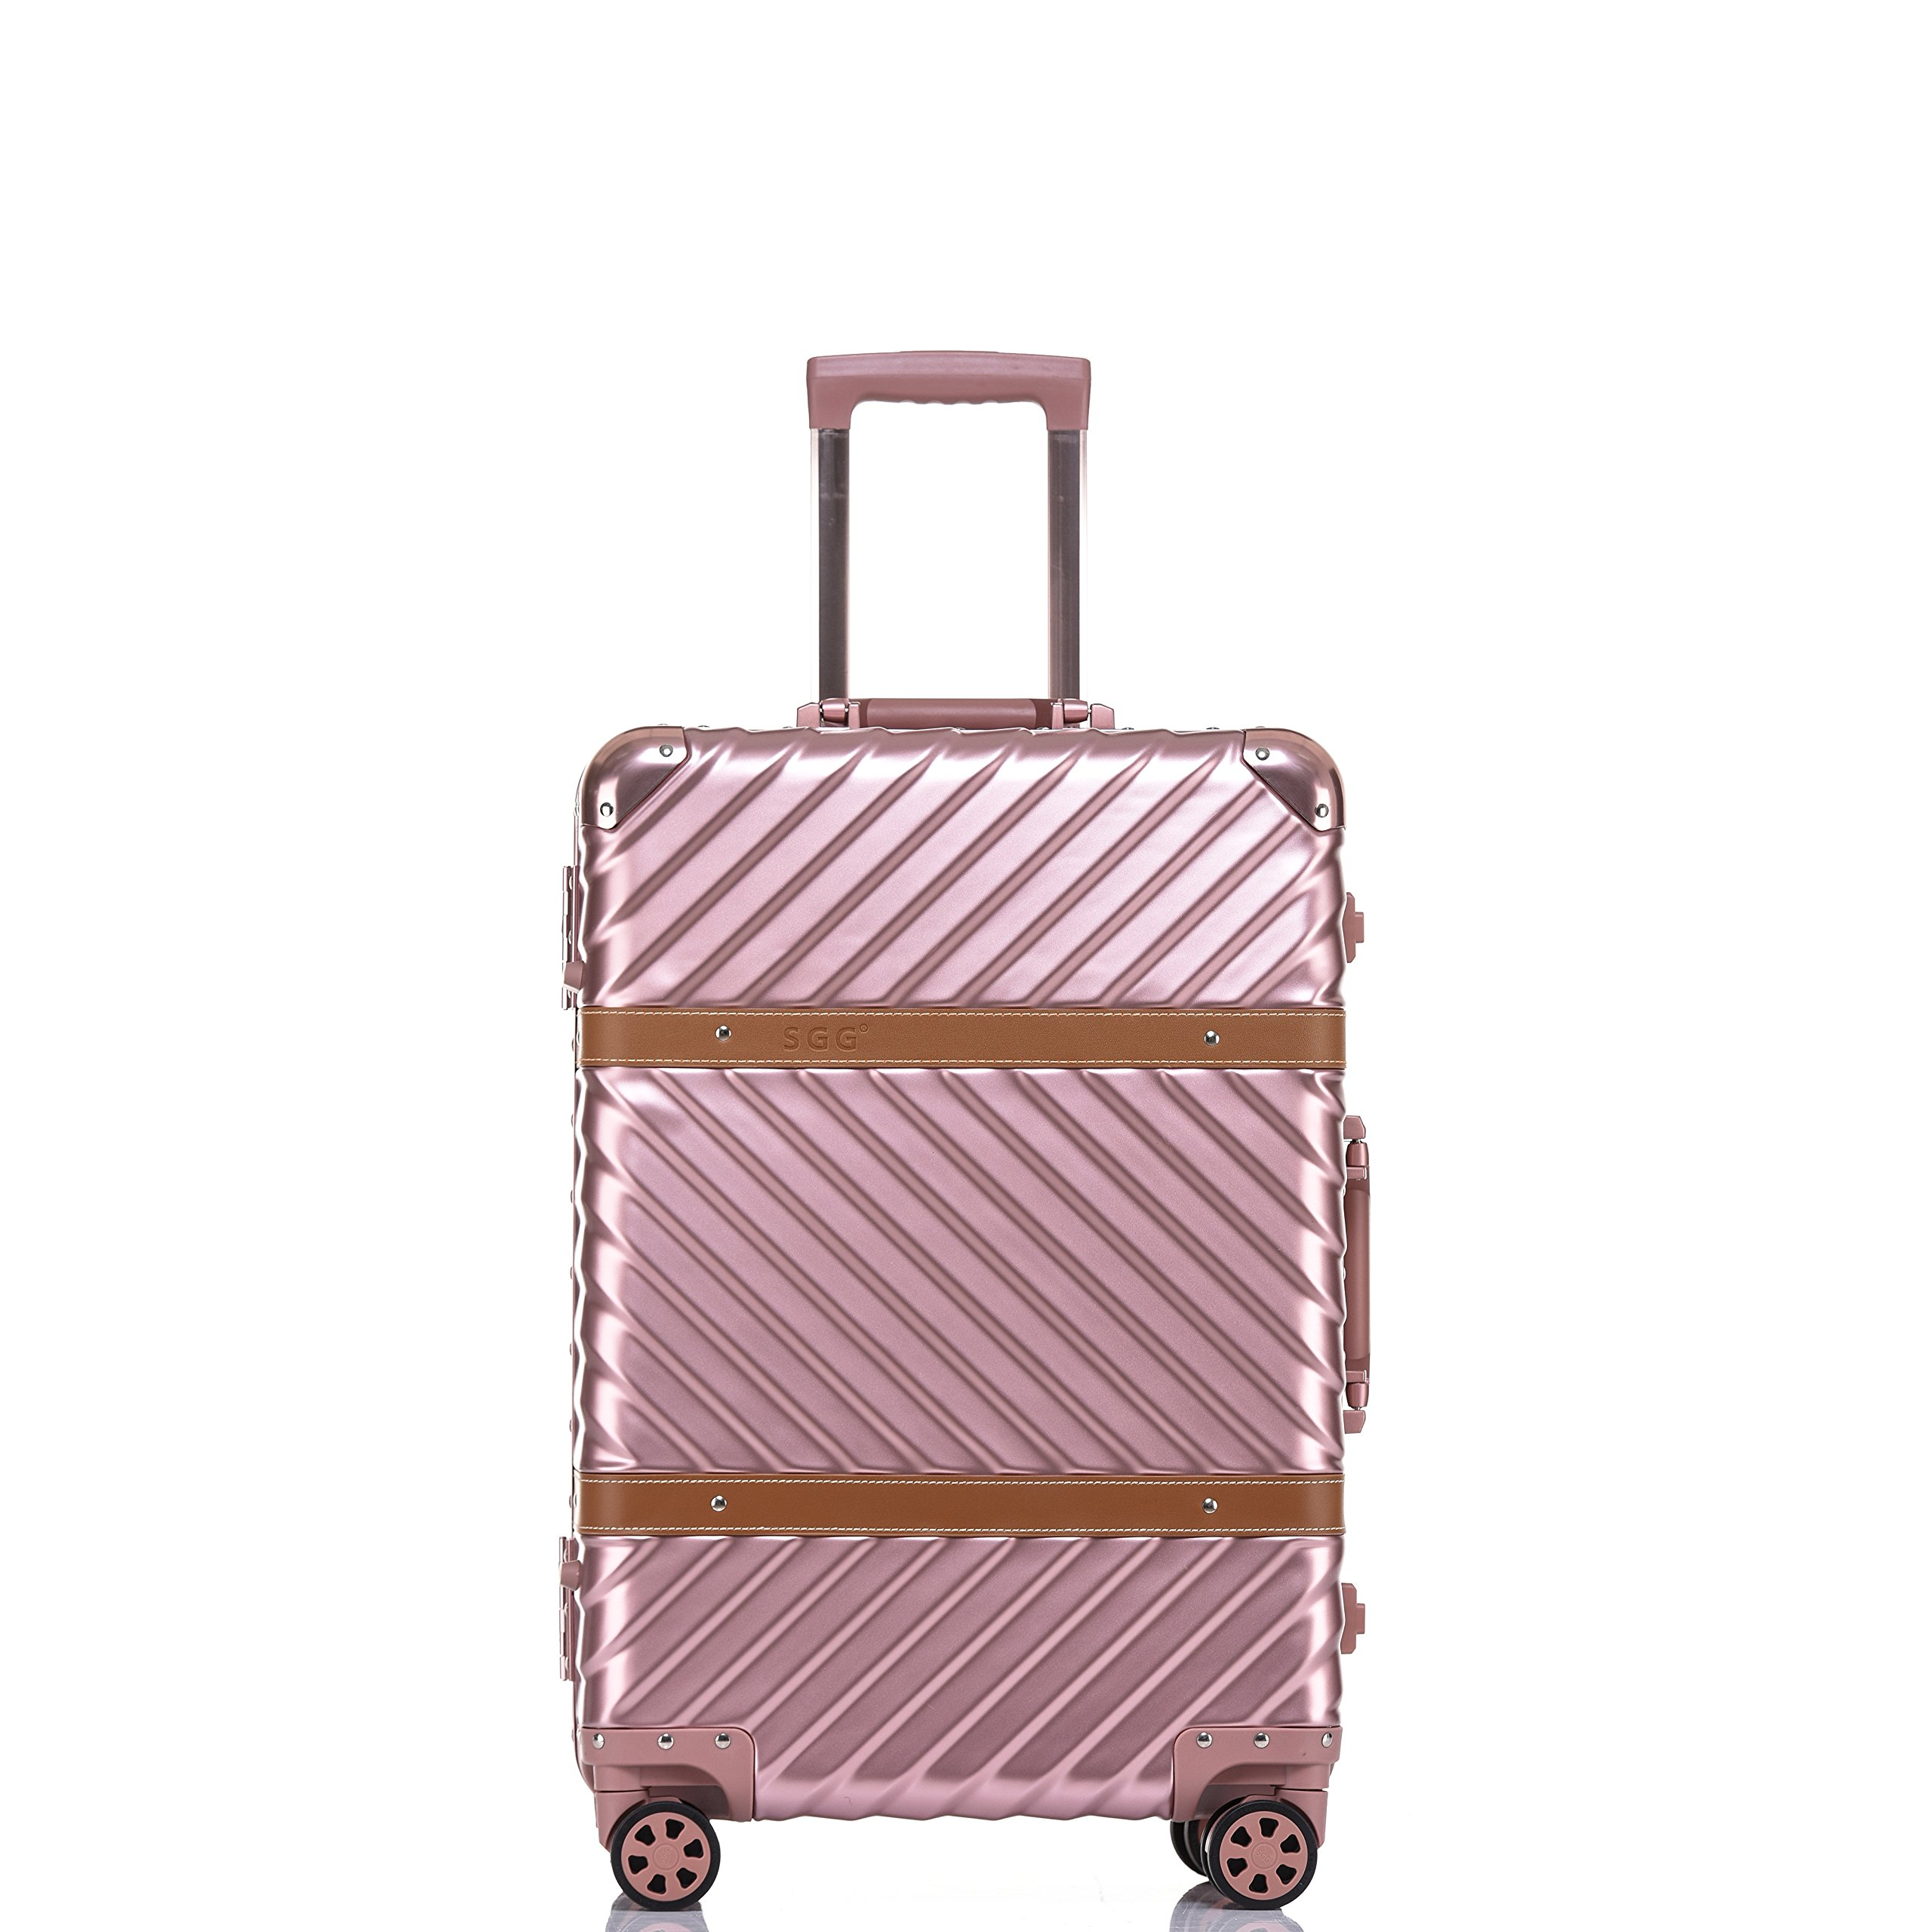 Travel Luggage, Aluminum Frame Hardside Suitcase with Detachable Spinner Wheels 20 Inch Rose Gold by Clothink